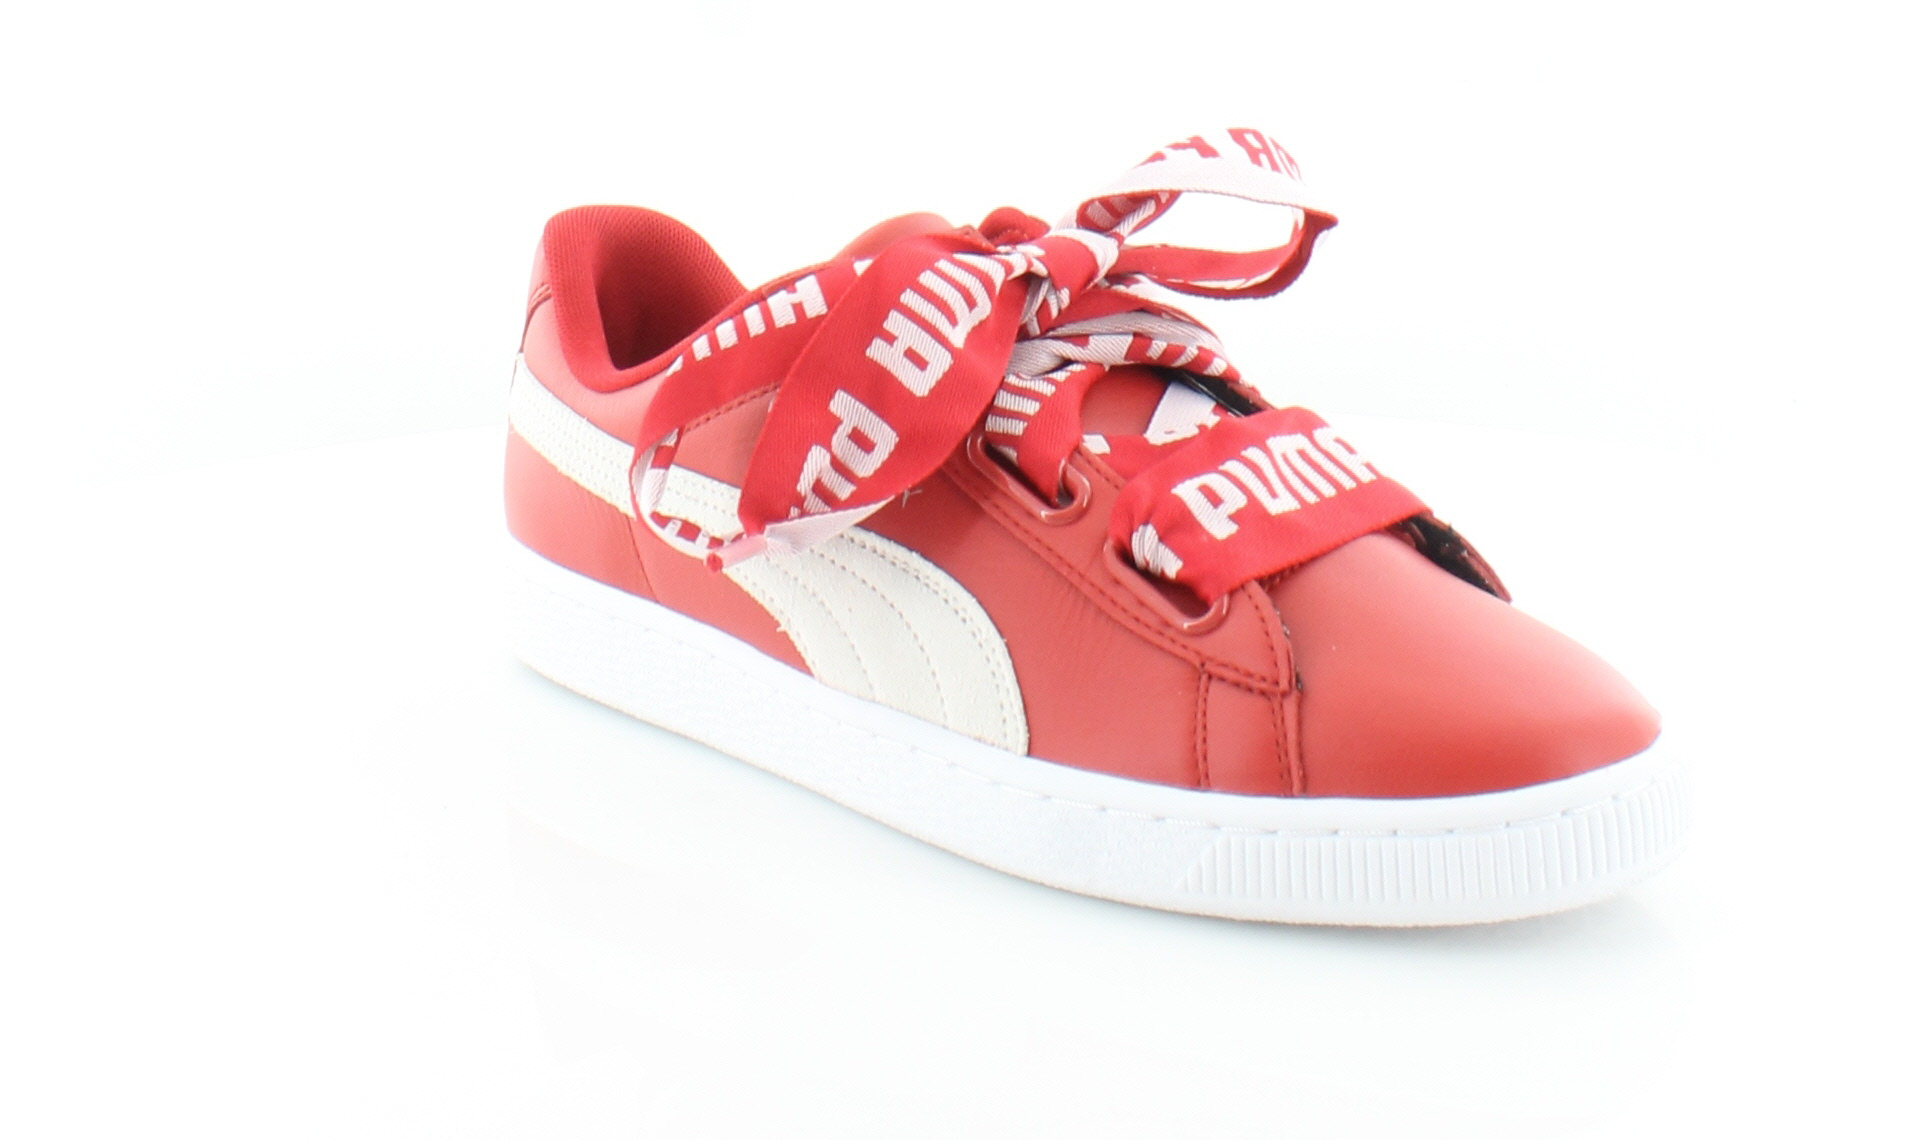 c3d84ed2d464 Puma Basket Heart Women s Fashion Sneakers Toreador-Puma White